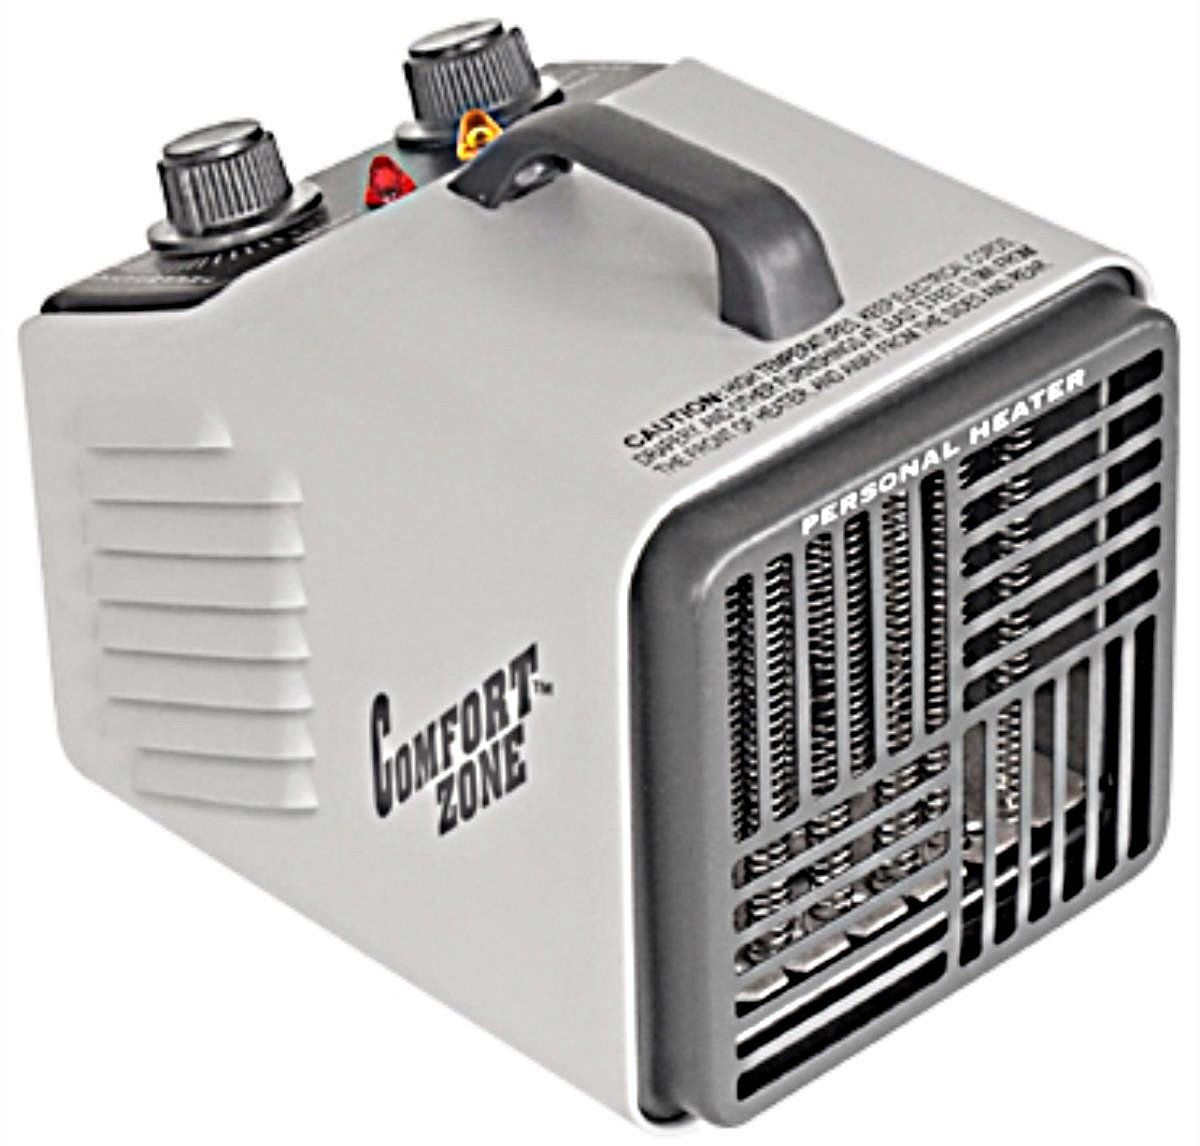 Comfort Zone 1500W Portable Electric Space Heater ...